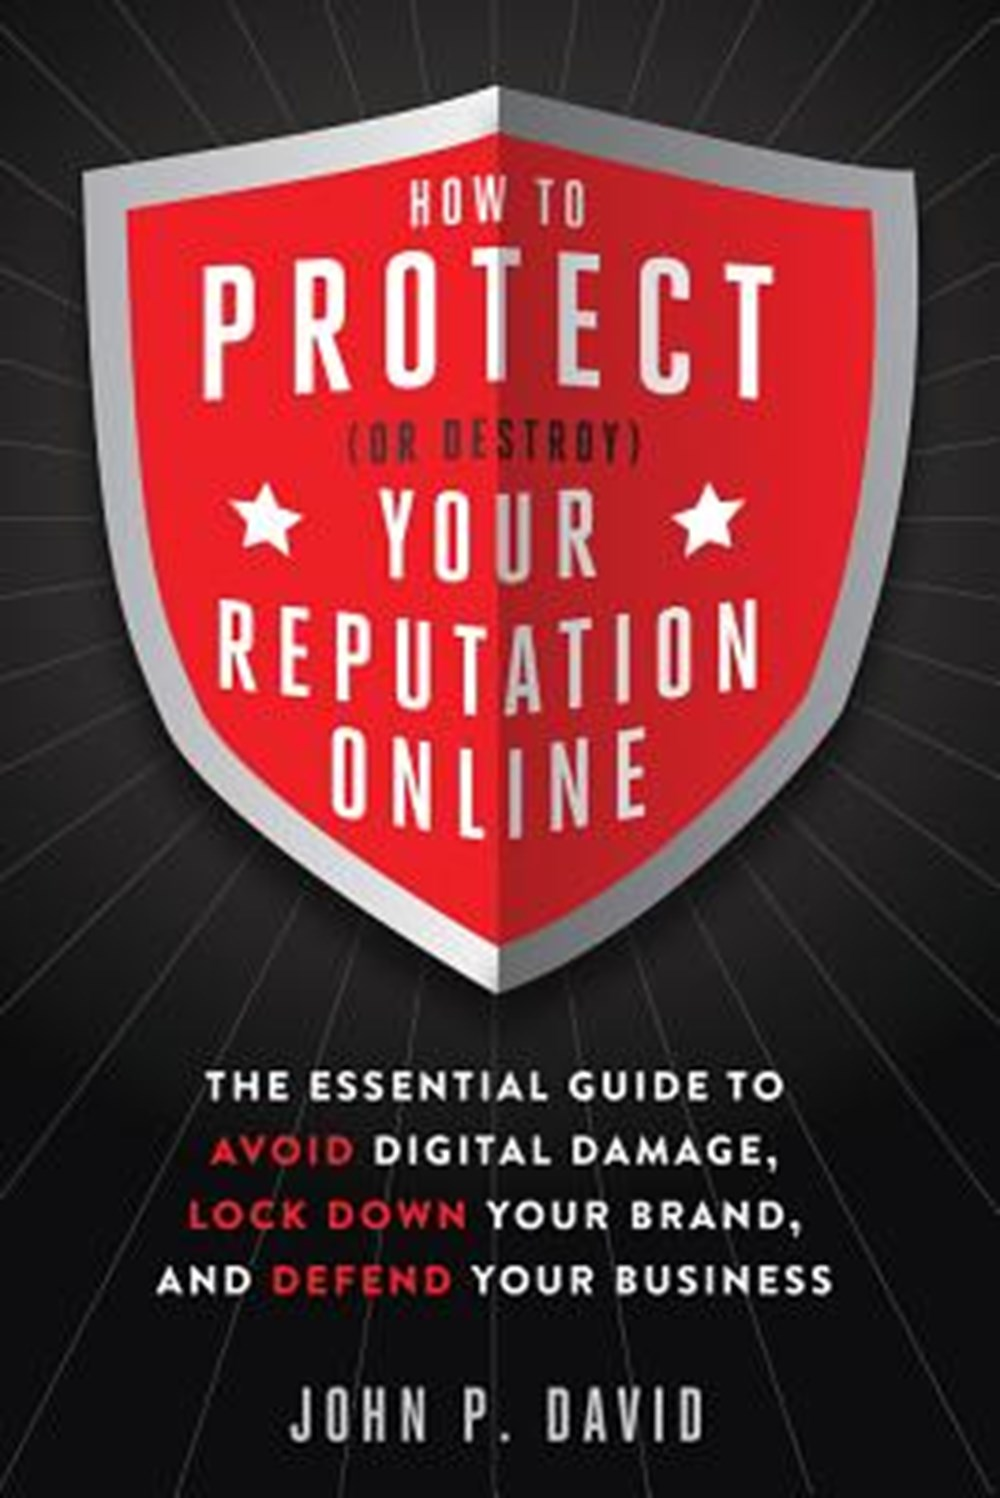 How to Protect (or Destroy) Your Reputation Online The Essential Guide to Avoid Digital Damage, Lock